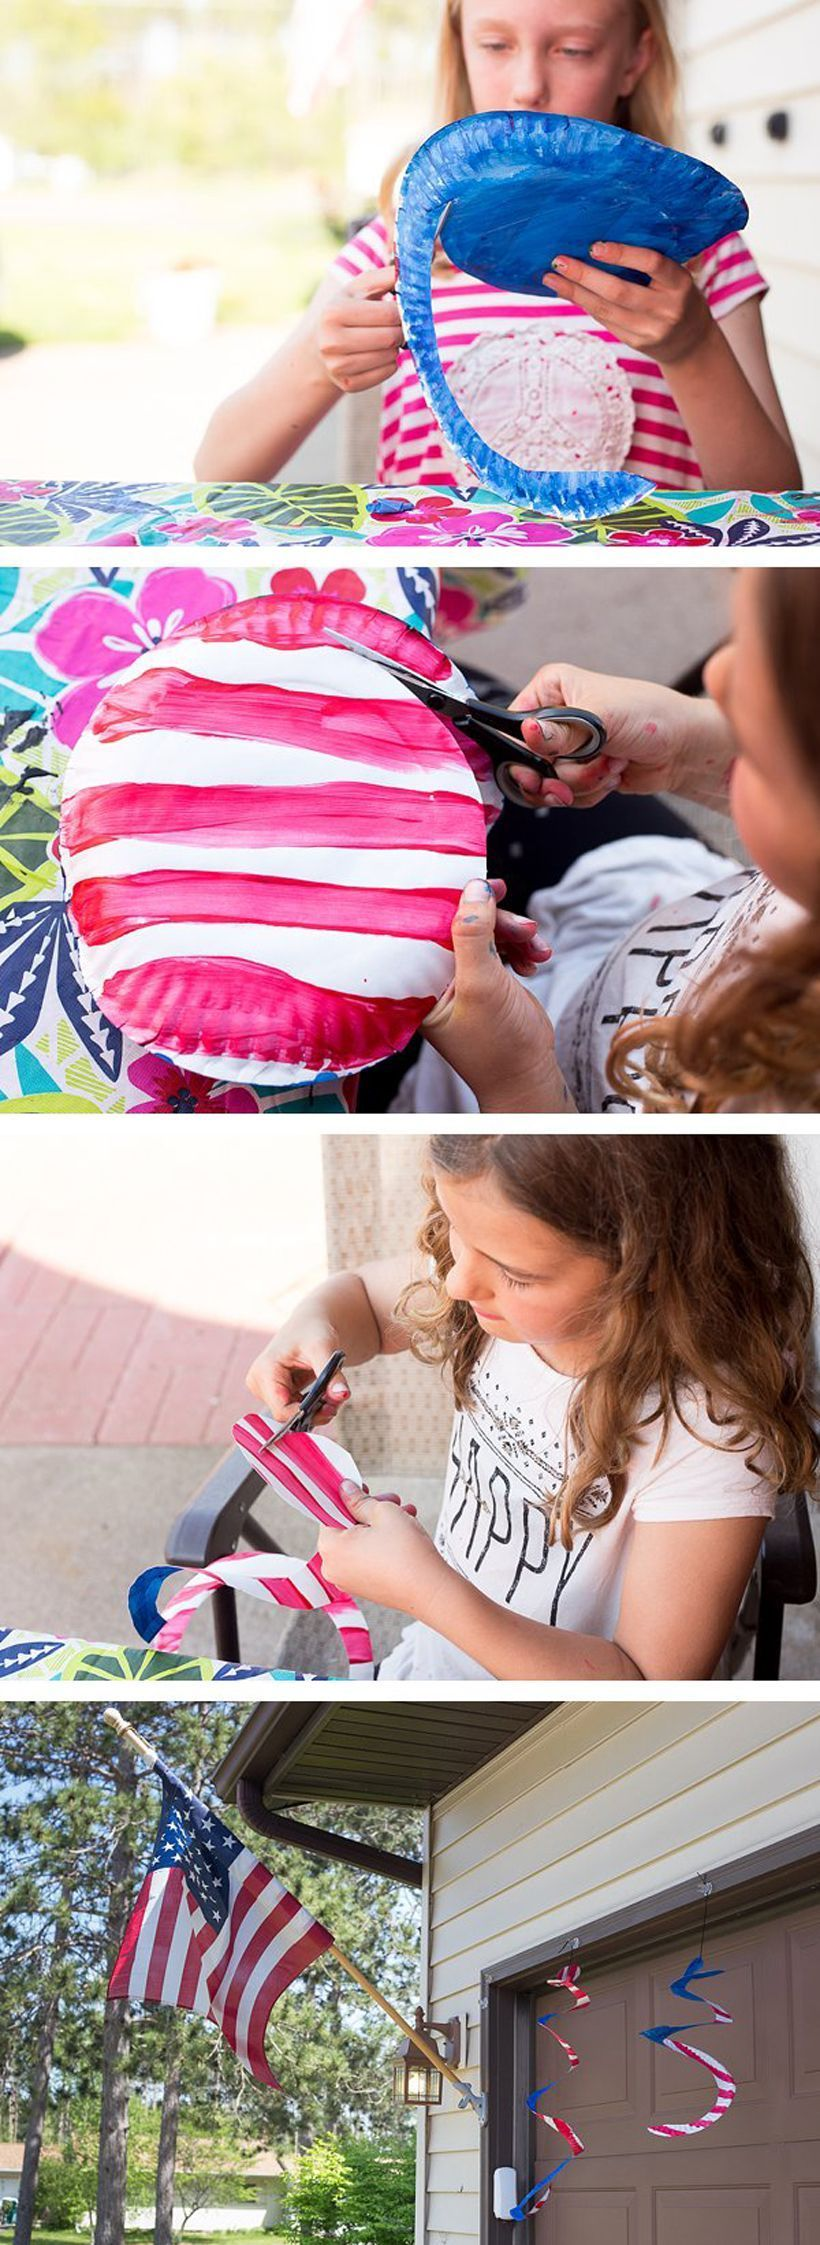 American Flag Wind Spinners Craft for Kids | Melissa & Doug Blog #labordaycraftsforkids Patriotic Craft for Kids: Super-Simple American Flag Wind Spinners - Celebrate Labor Day with this easy children's art project *Love these! #labordaycraftsforkids American Flag Wind Spinners Craft for Kids | Melissa & Doug Blog #labordaycraftsforkids Patriotic Craft for Kids: Super-Simple American Flag Wind Spinners - Celebrate Labor Day with this easy children's art project *Love these! #labordaycraftsforkids